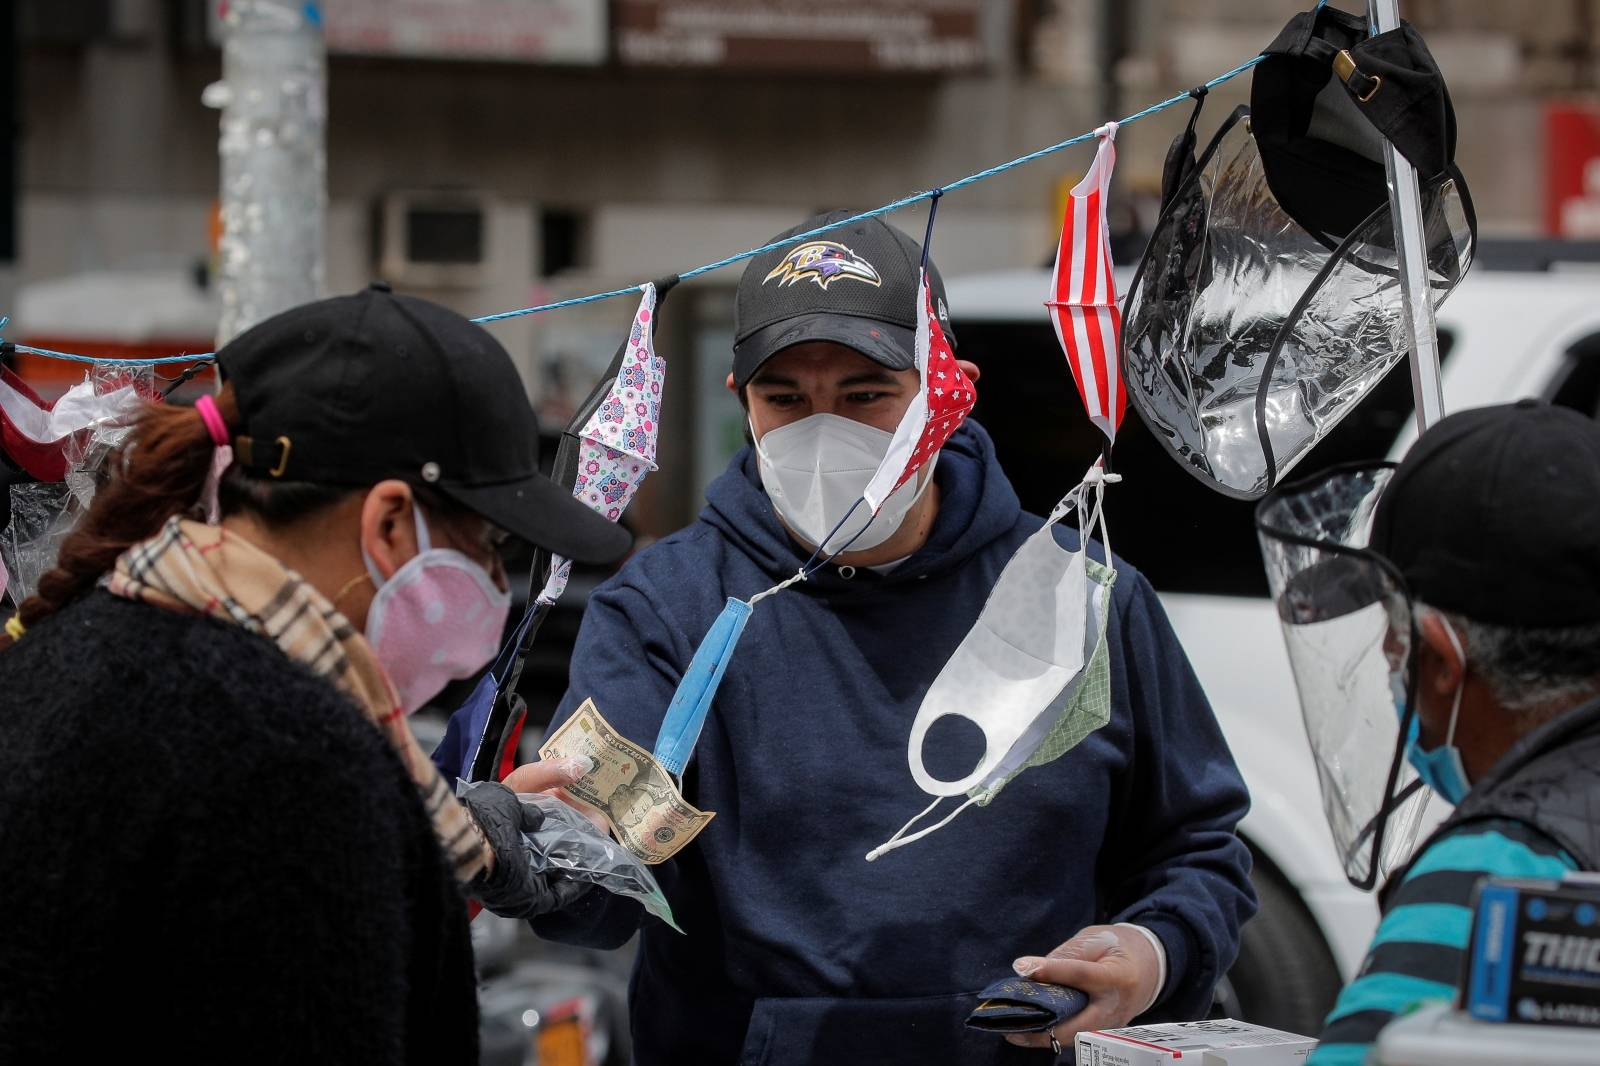 A man purchases a face mask from a street vendor, during the outbreak of the coronavirus disease (COVID-19), in the Corona section of Queens, New York